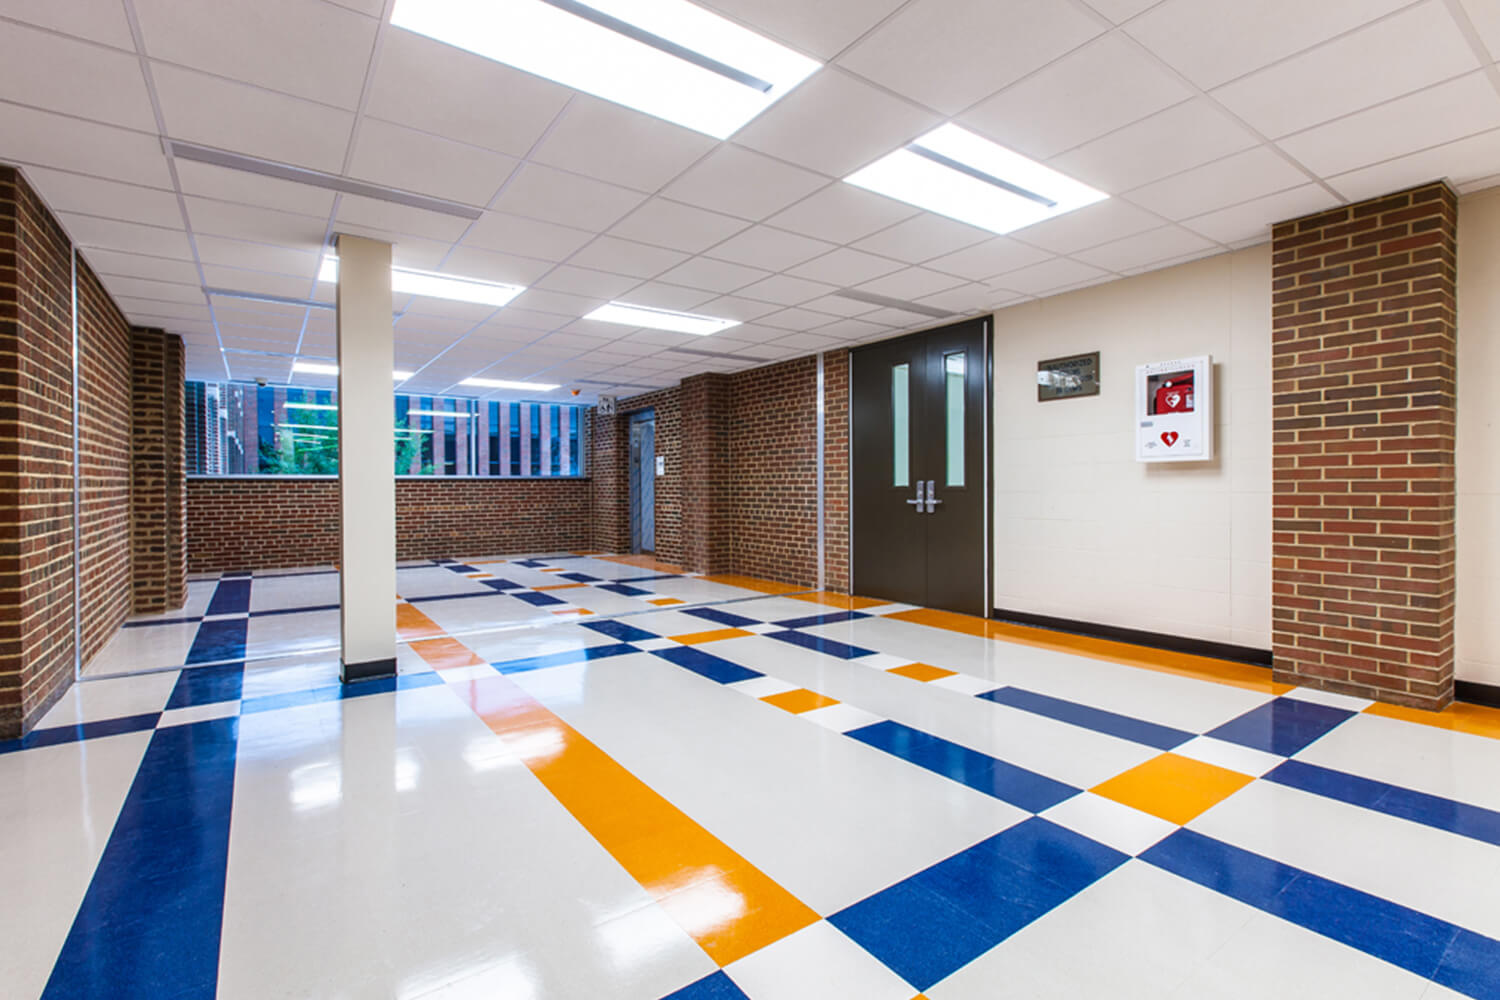 Evanston Township High School – Entry & Renovation Project interior 3